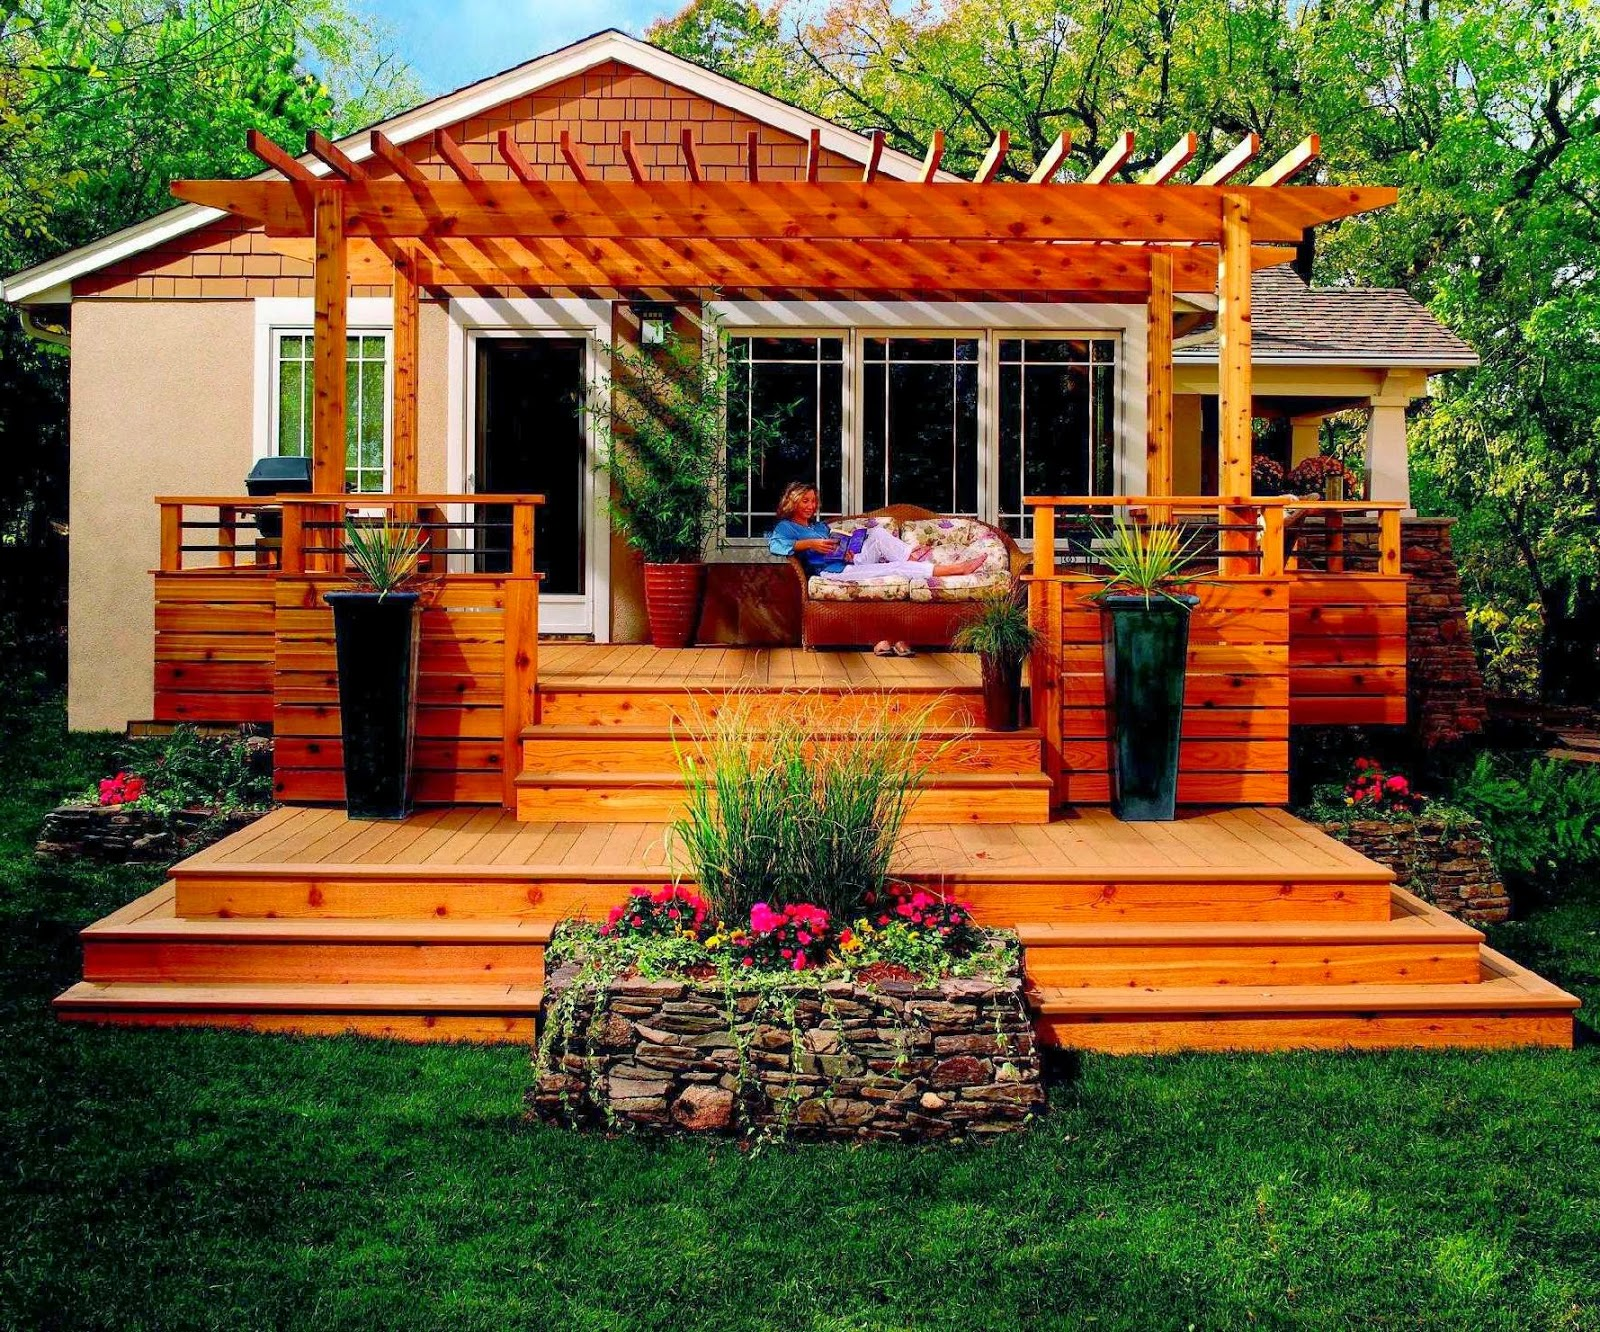 Awesome backyard deck design for Yard design ideas